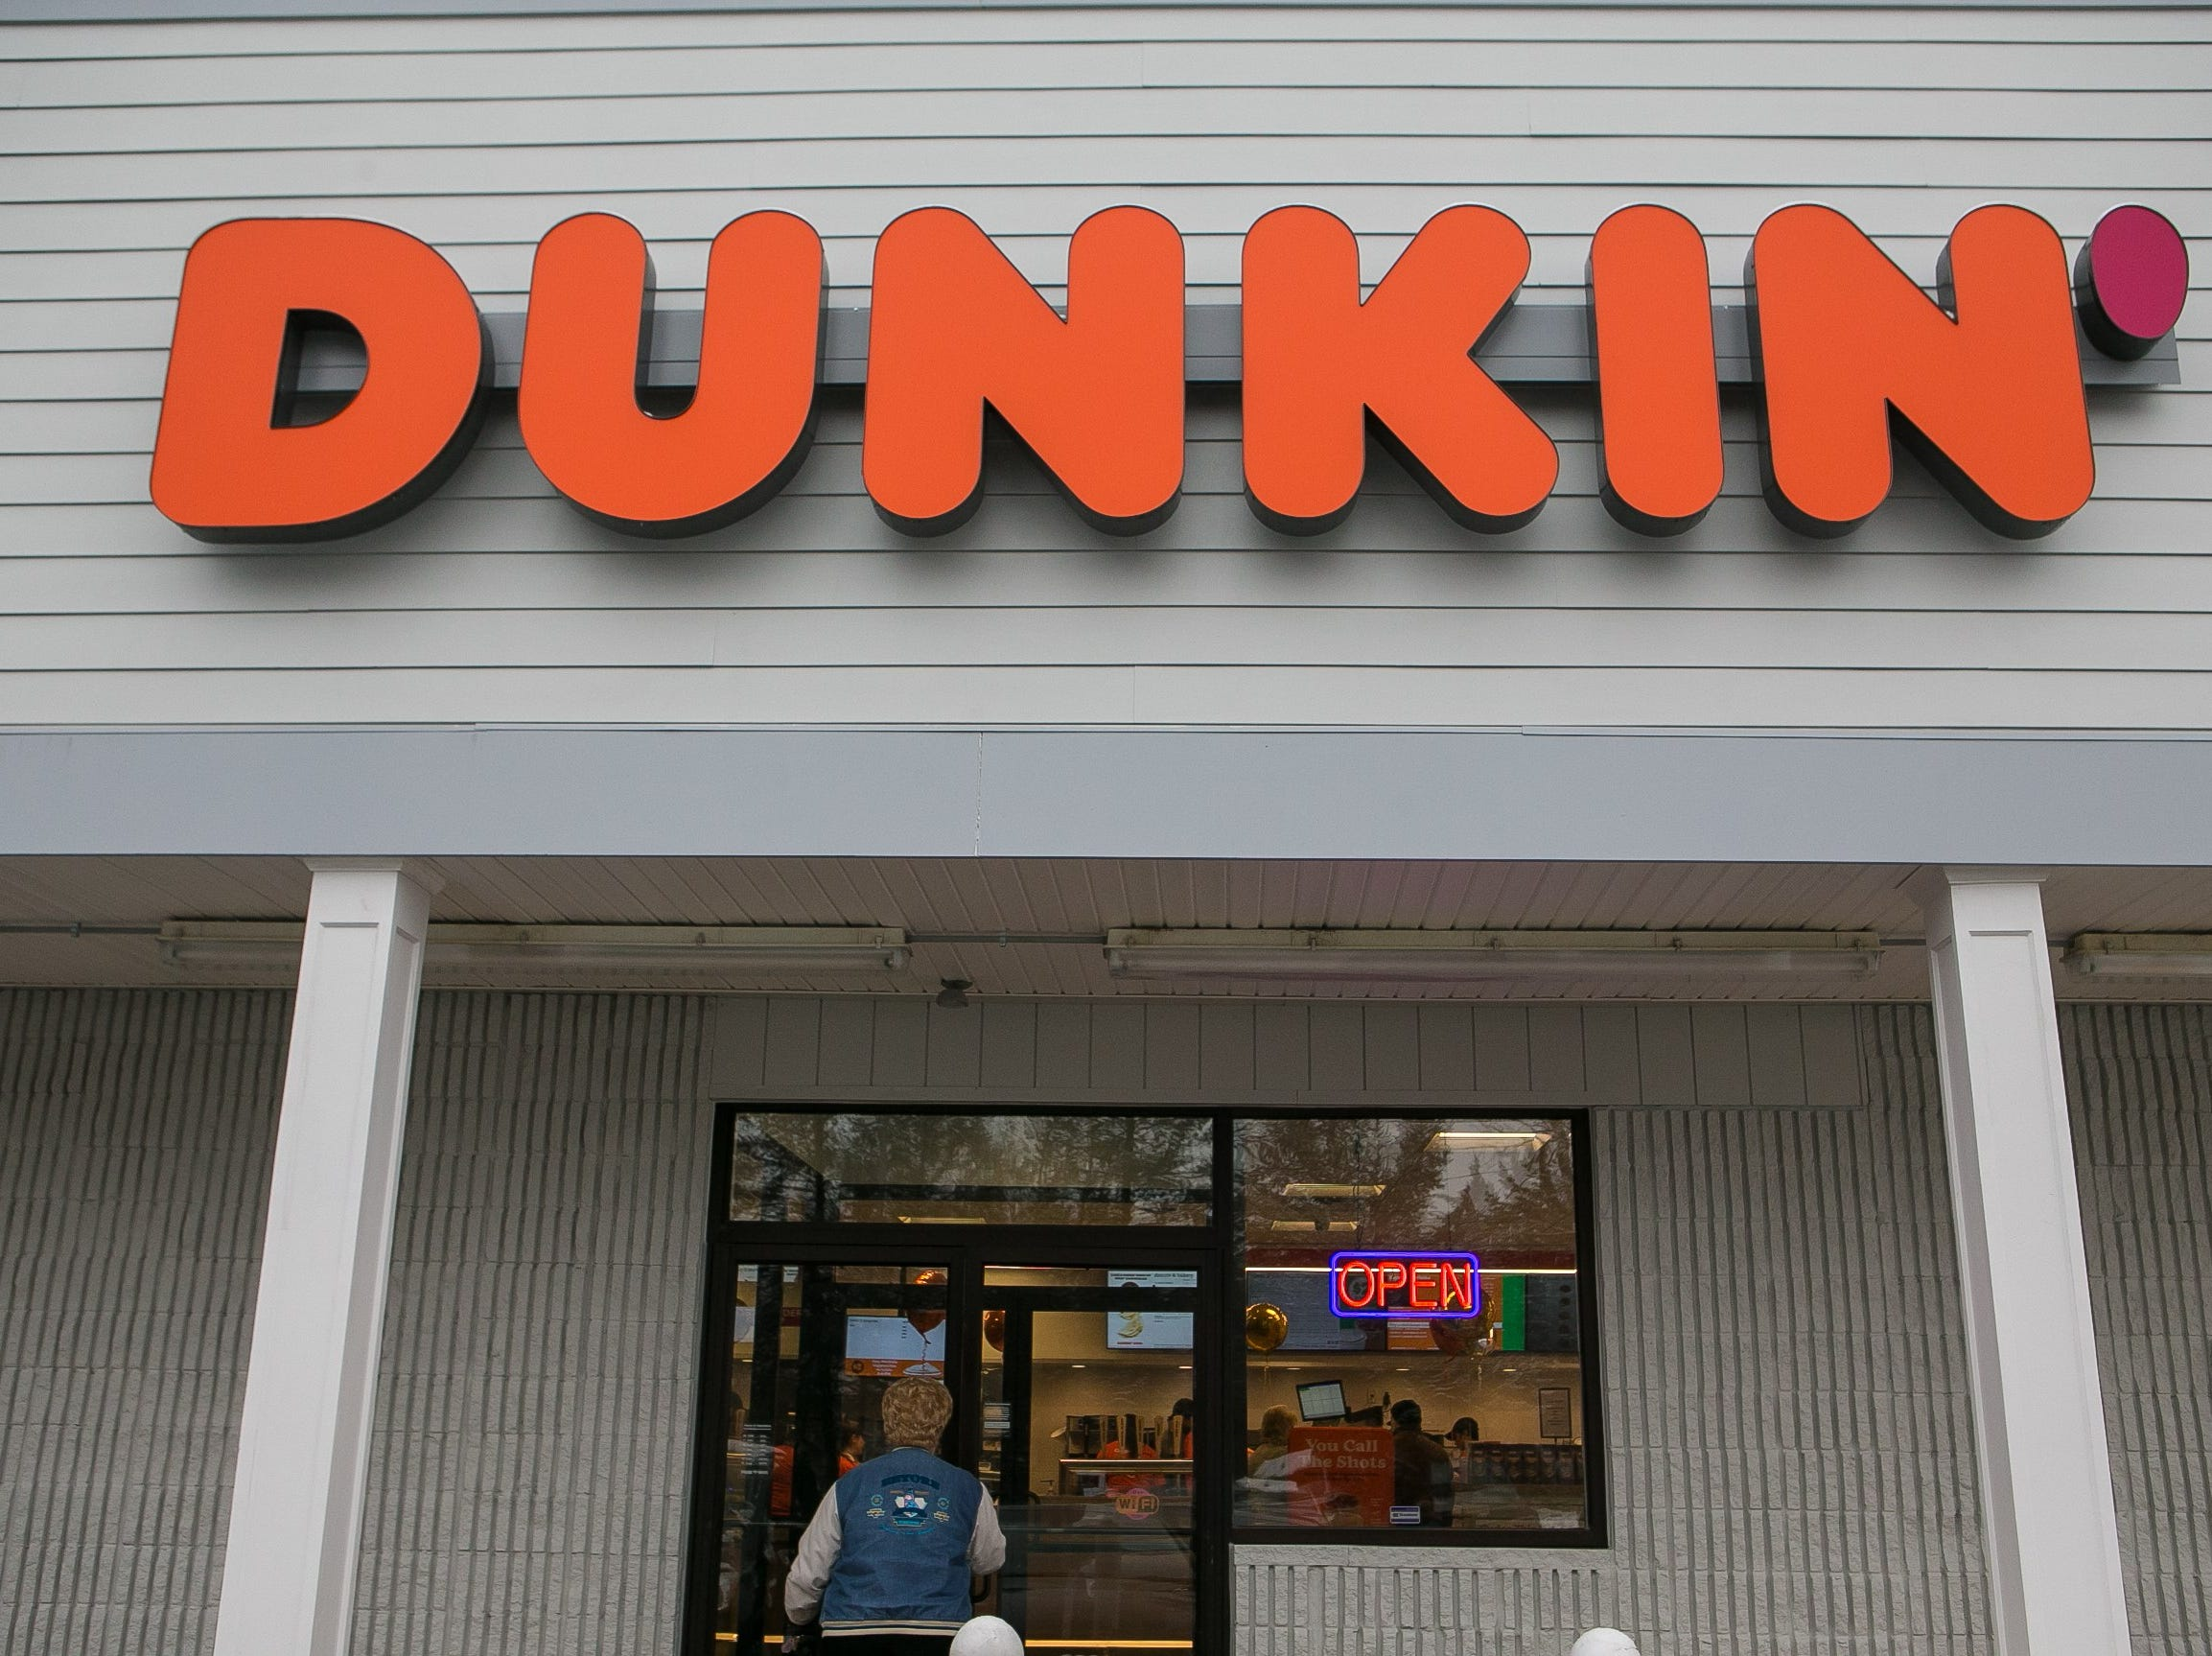 The Delaware store is one of about 60 new and remodeled Dunkin' restaurants with new designs and the new Dunkin' brand name.